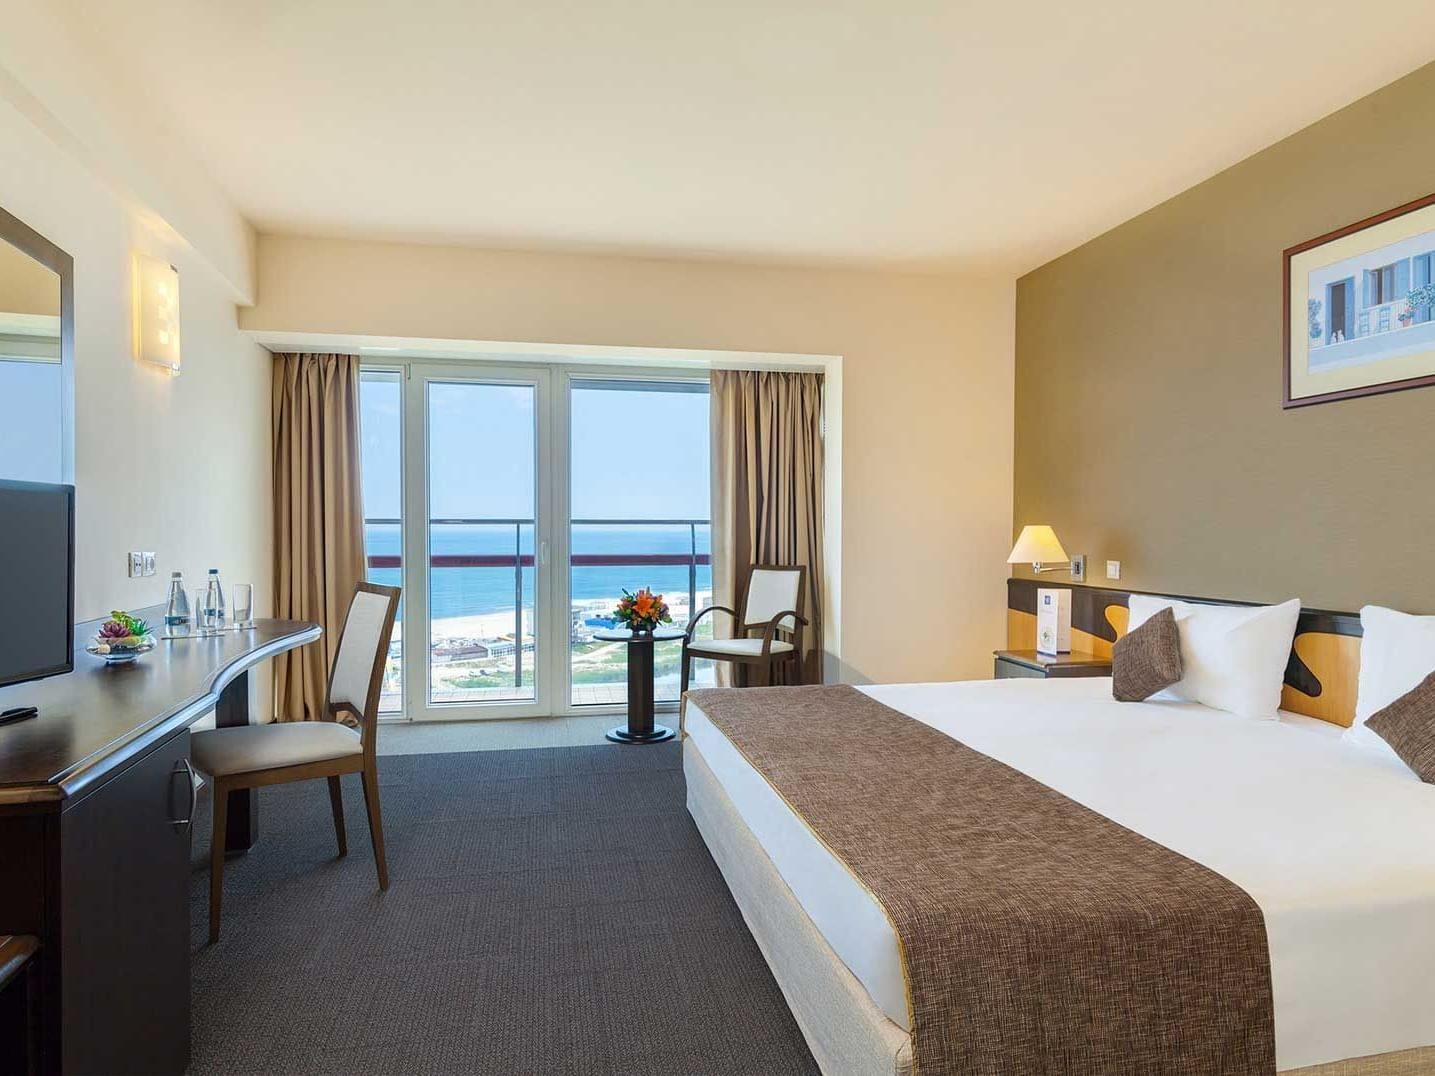 King Junior Suite la Ana Hotels Europa Eforie Nord